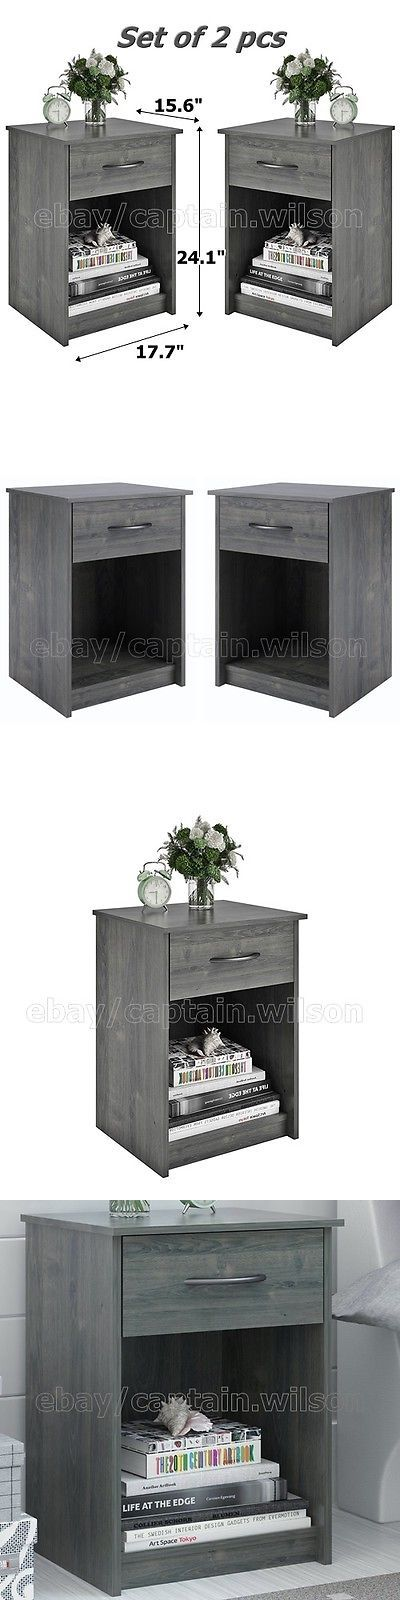 Nightstands 38199: Nightstand Set Of 2 Gray End Table Bedroom Bedside Furniture Shelf Drawer -> BUY IT NOW ONLY: $84.91 on eBay!